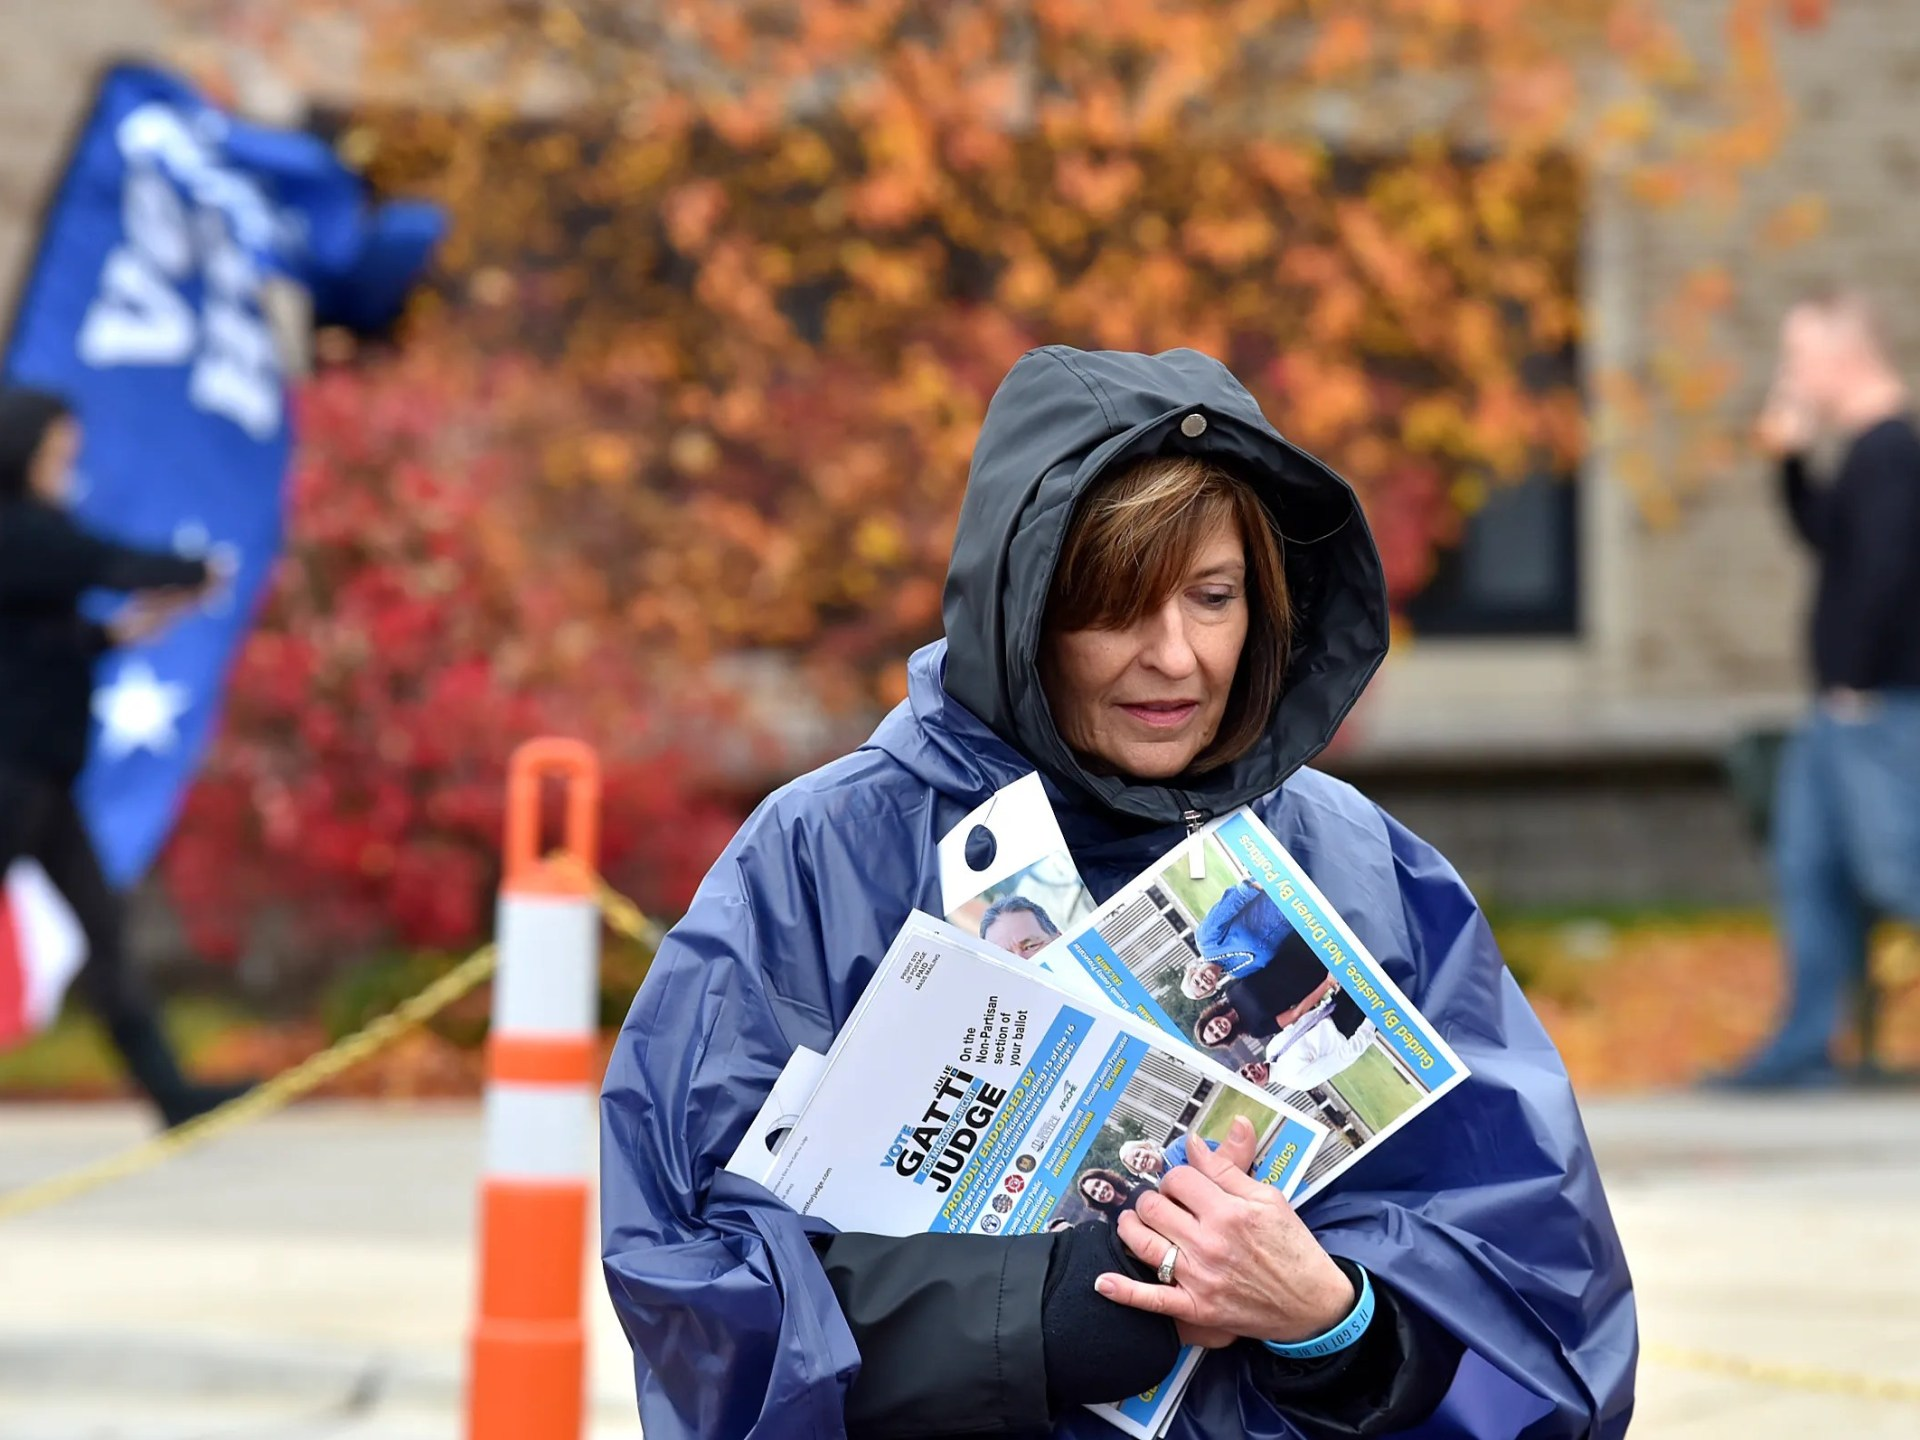 With blustery winds, rain and temperatures in the mid-50s, Linda Anderson of Macomb Township is bundled up to hand out campaign literature outside Ojibwa Elementary School. She is a volunteer for Julie Gatti, a candidate for Macomb County Circuit Court Judge.